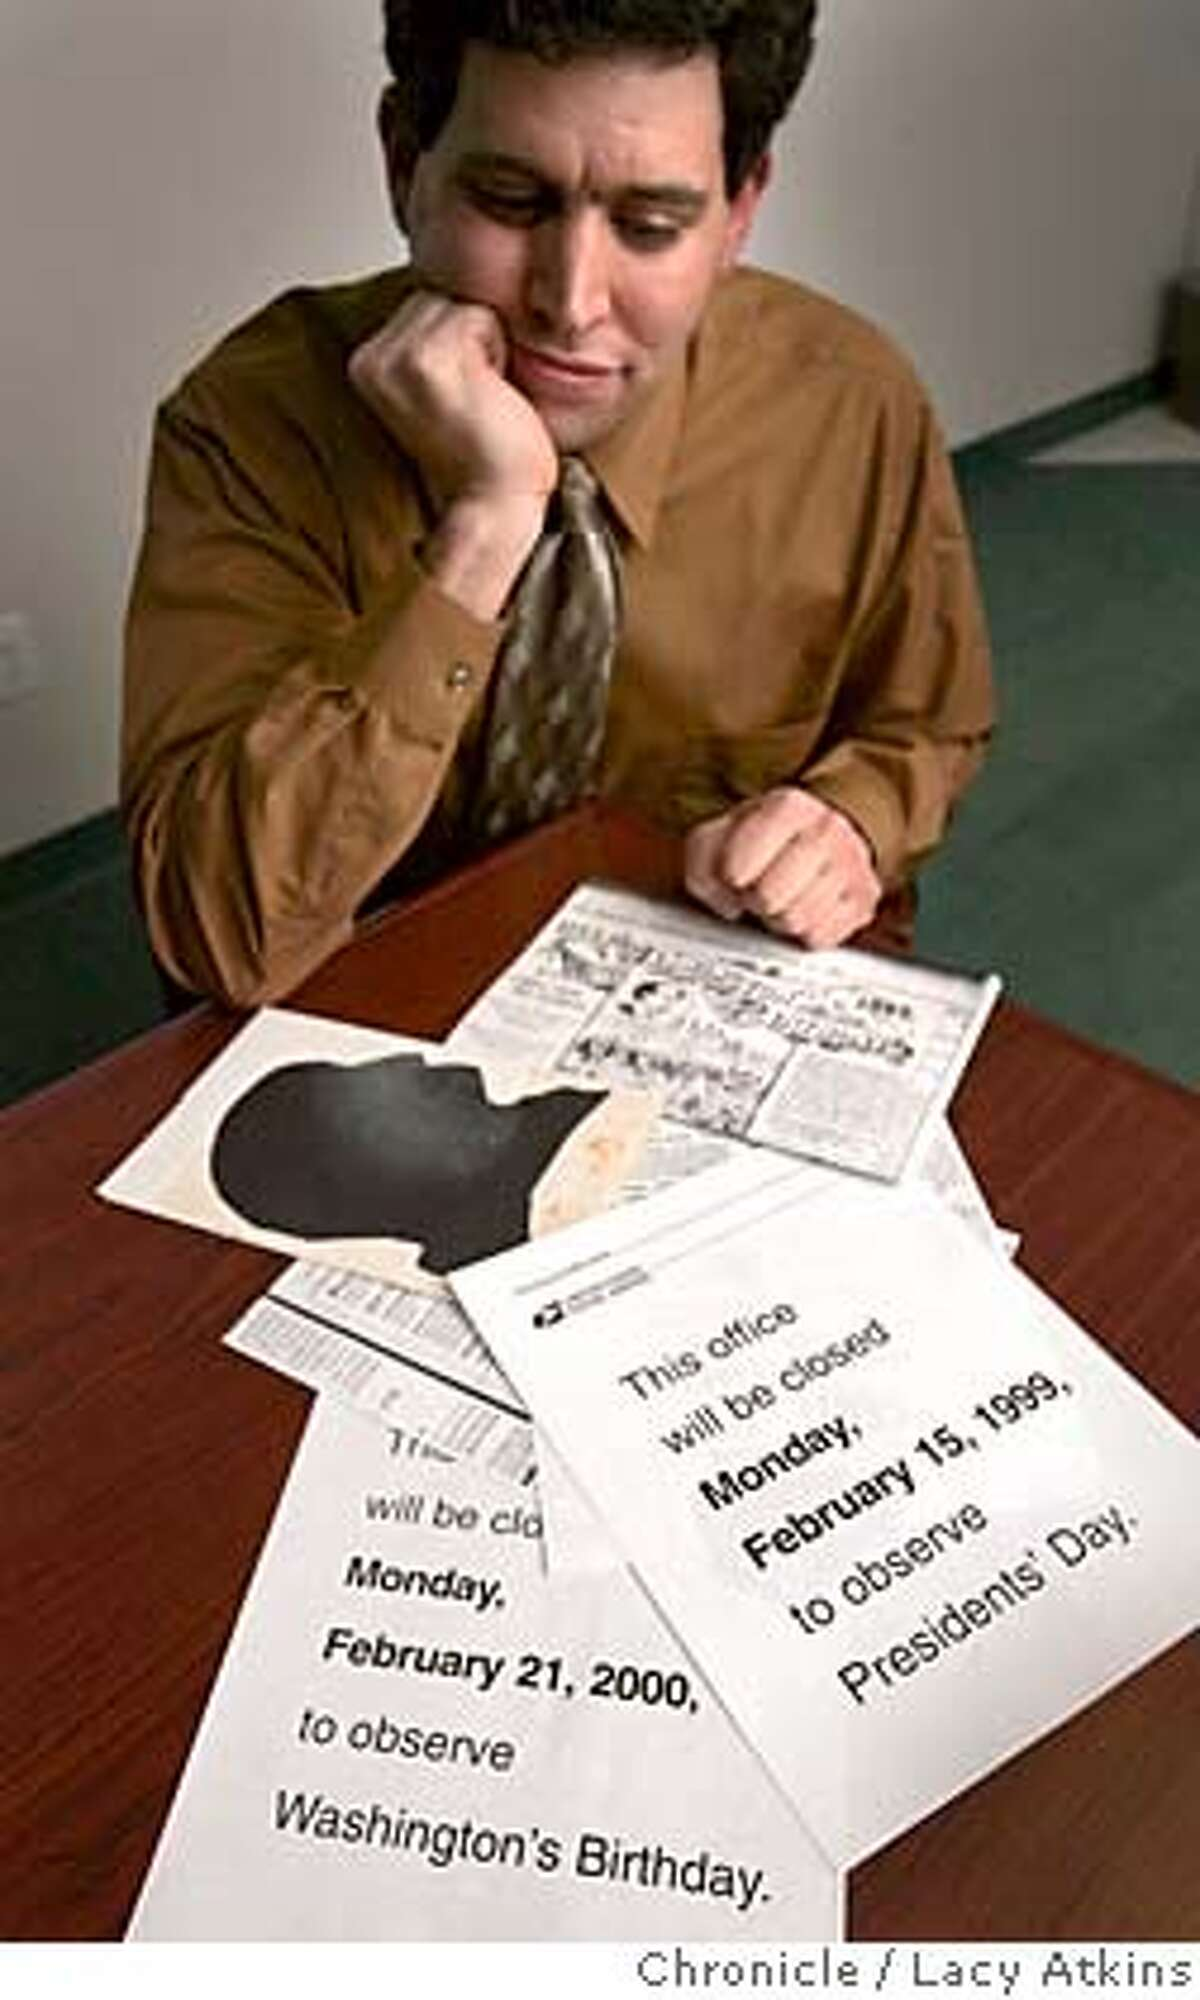 Jason Bezis, shows the papers he has collected showing both Washington's Birthday and President's Day, Wed. feb,16,05, in San Francisco.Jason Bezis, a lawyer from Lafayette, is on a crusade to have Washington's Birthday be called Washington's Birthday rather than Presidents Day. It's officially Washington's Birthday, but apparently there's been a popular cultural shift. Photographer Lacy Atkins / San Francisco Chronicle